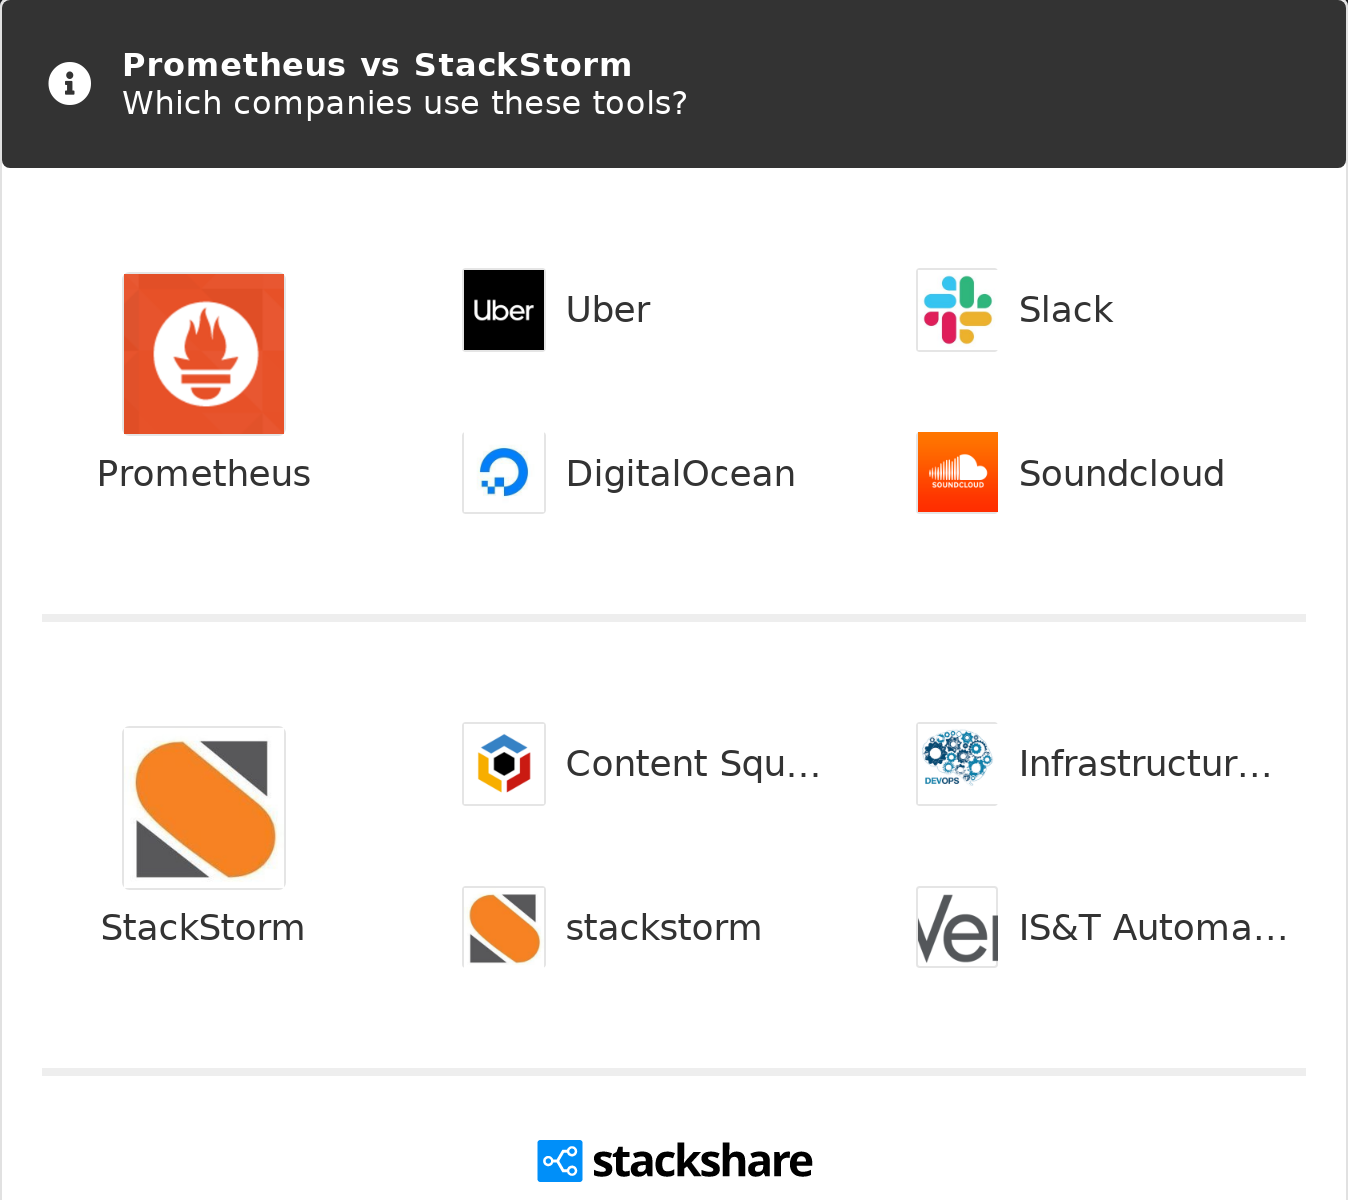 Prometheus vs StackStorm | What are the differences?